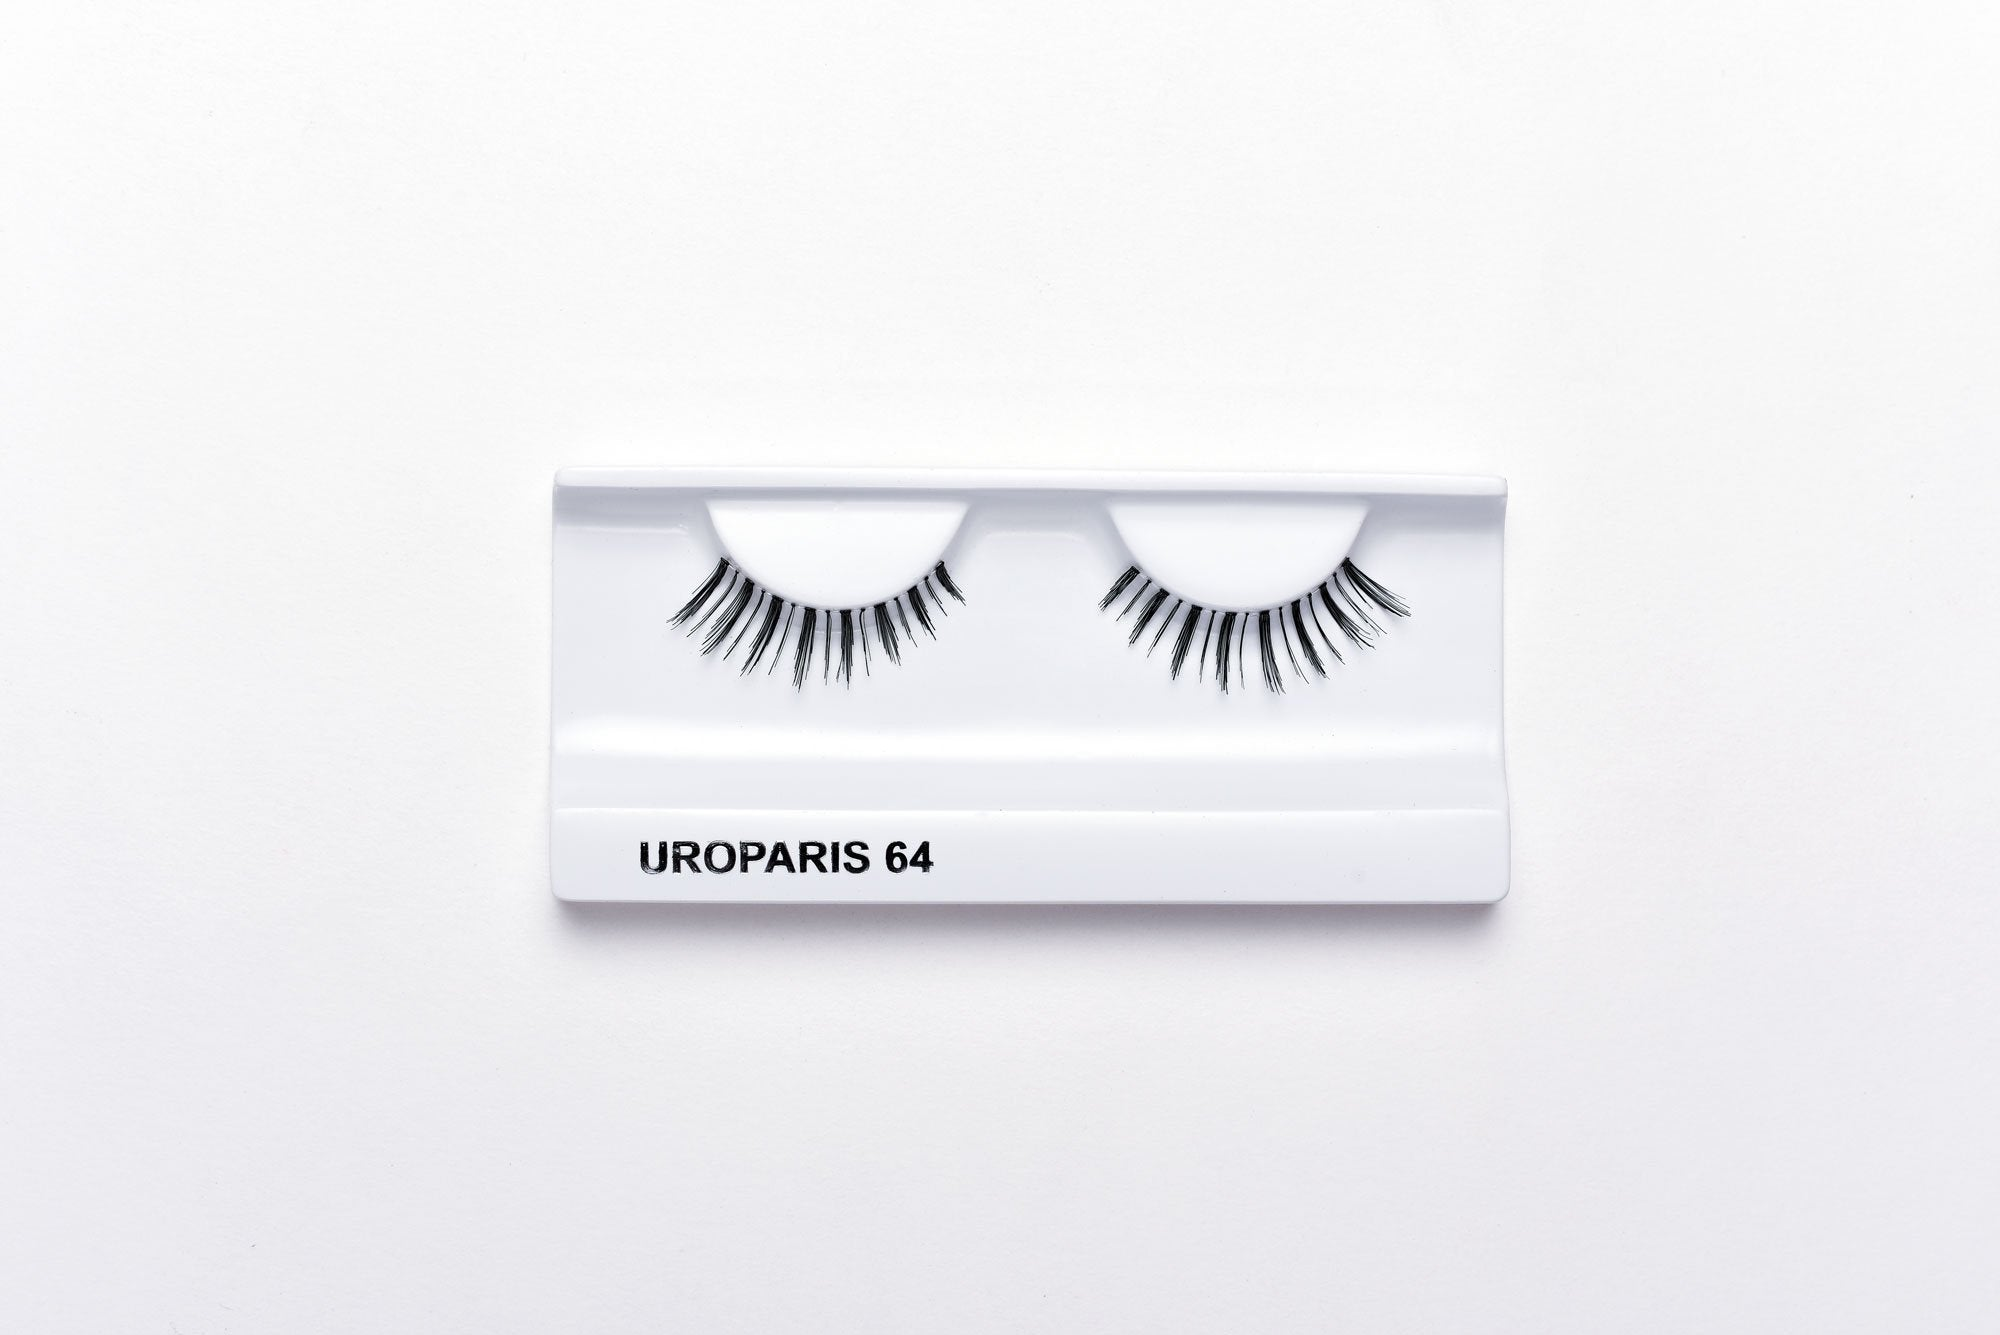 Uroparis Eyelashes 64